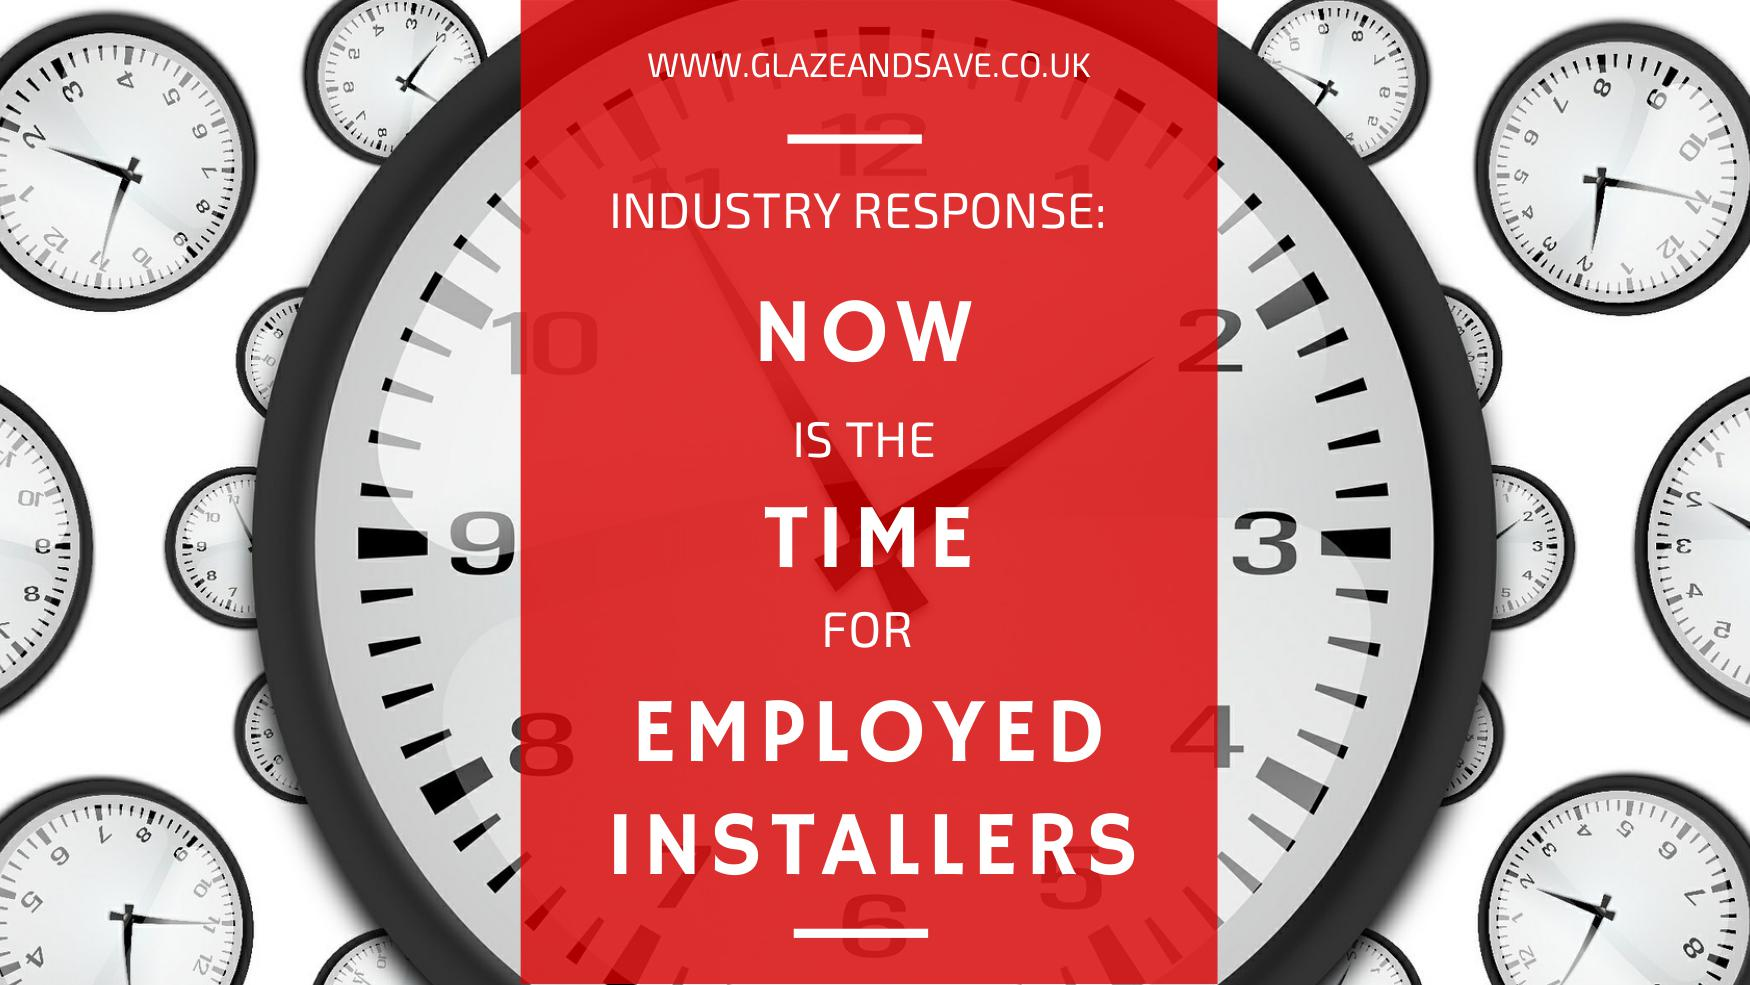 Now is the time for employed installers in the glass and glazing industry by Glaze & Save bespoke magnetic secondary glazing and draught proofing specialists based in Perth, Scotland.